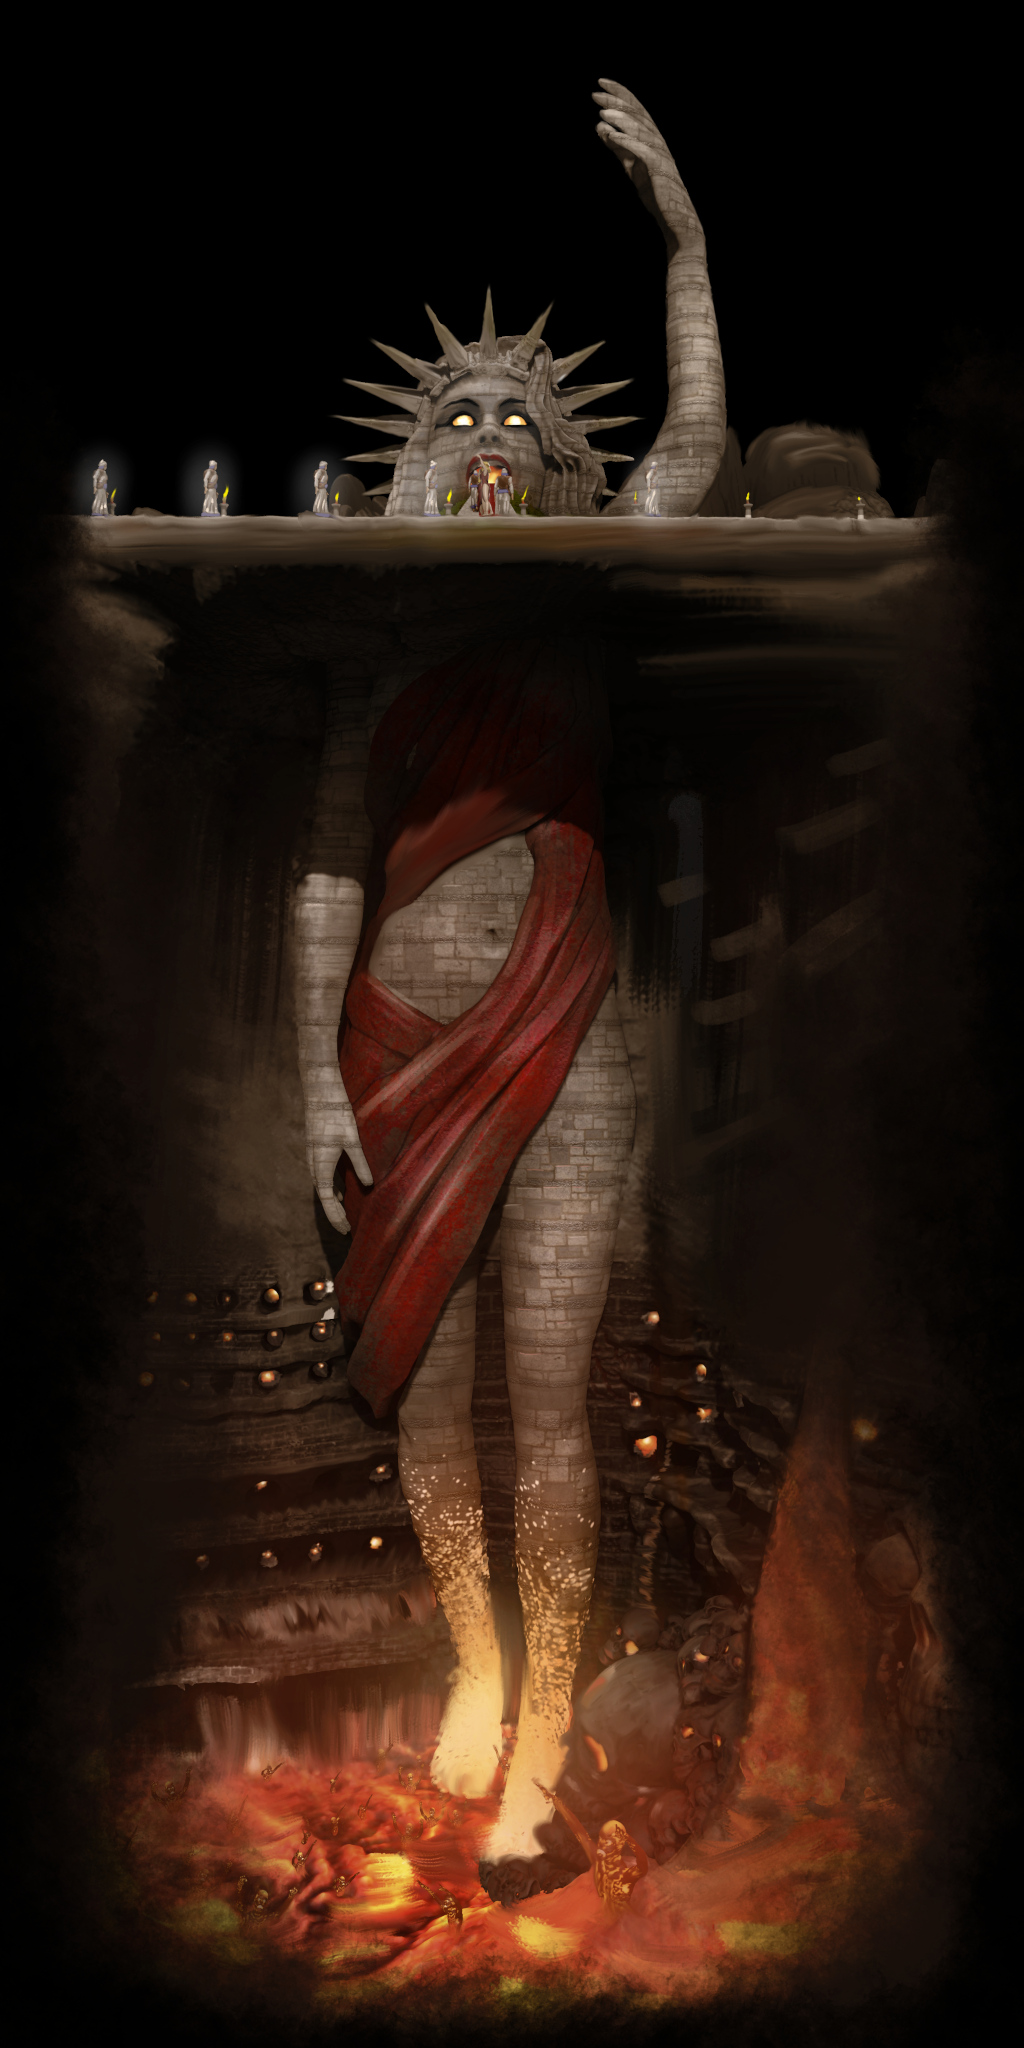 Mystery Babylon the Great Mother of Harlots